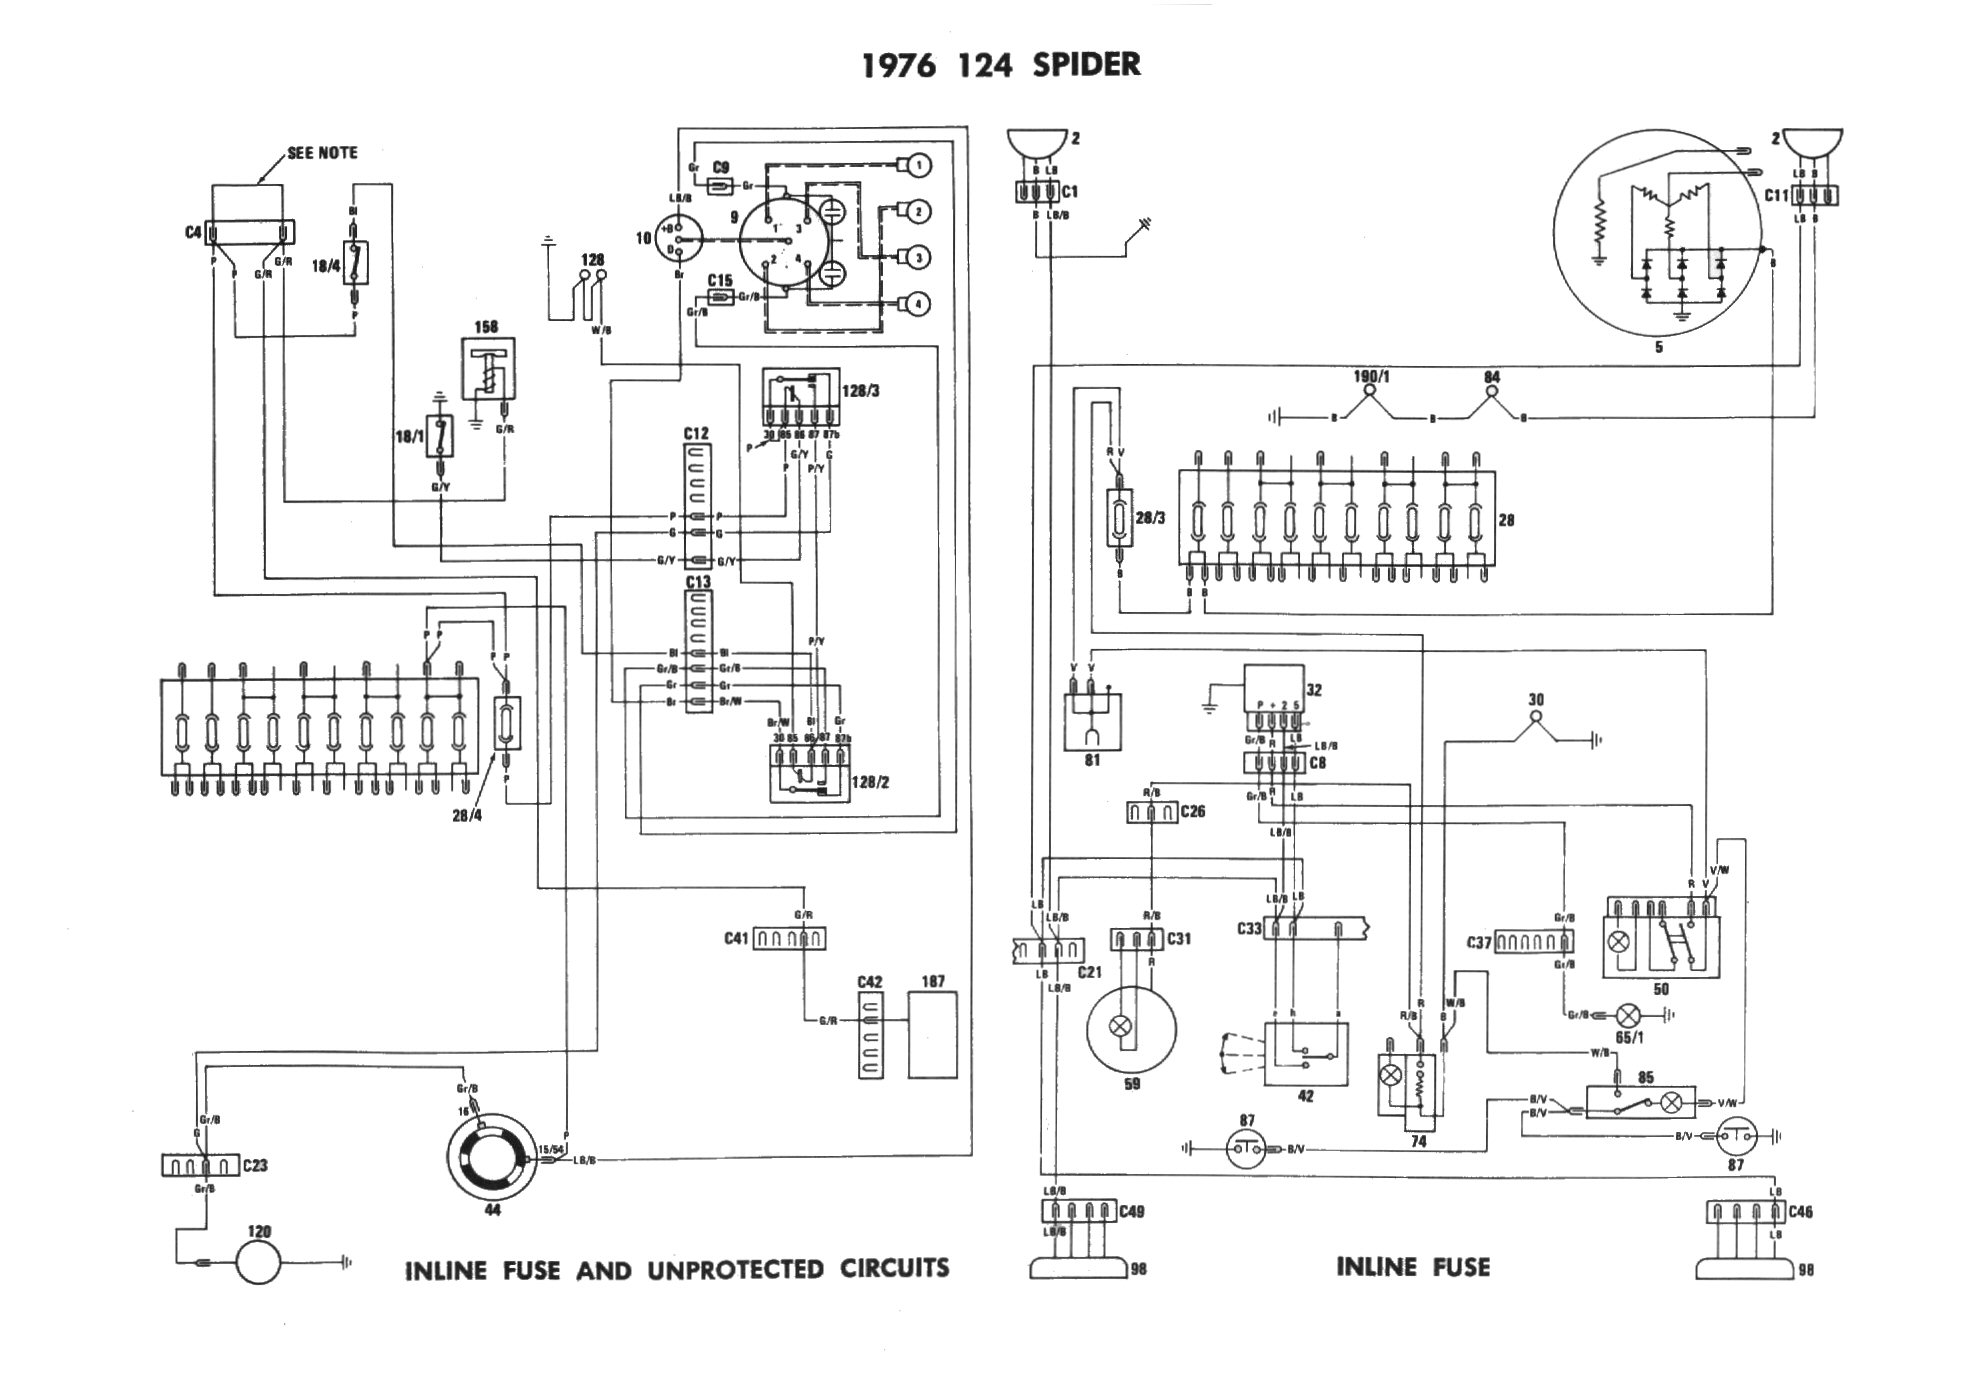 79 fiat spider wiring diagram diy wiring diagrams u2022 rh dancesalsa co